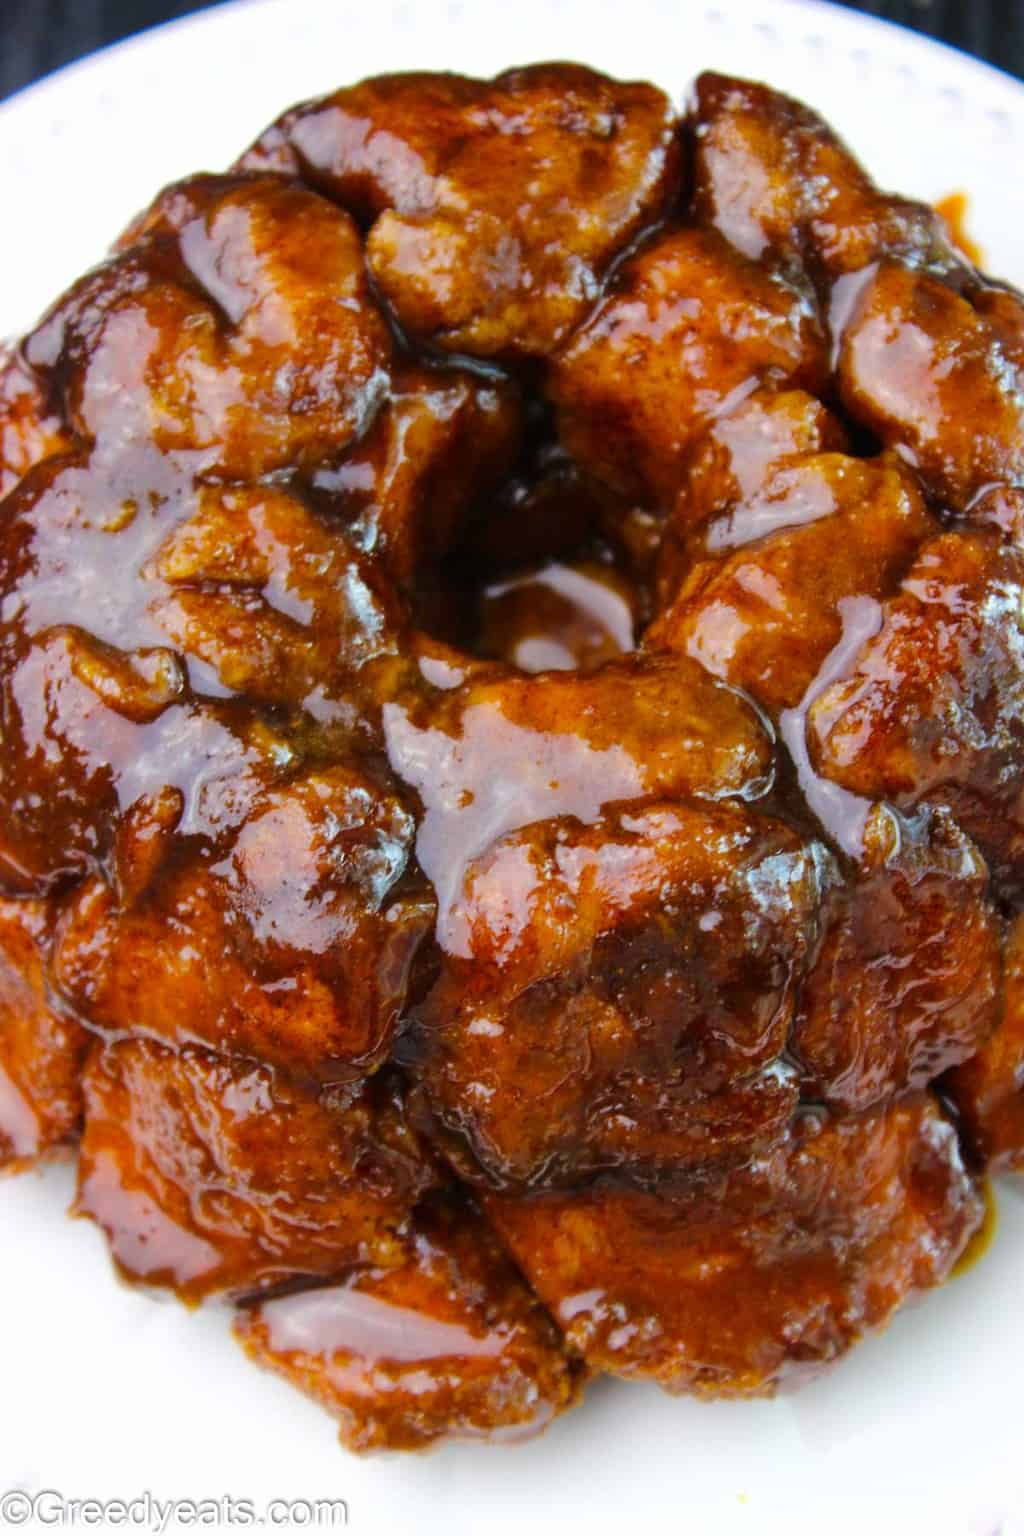 Warm, buttery and filled with cinnamon spice, my overnight monkey bread will be an instant favorite in your kitchen.